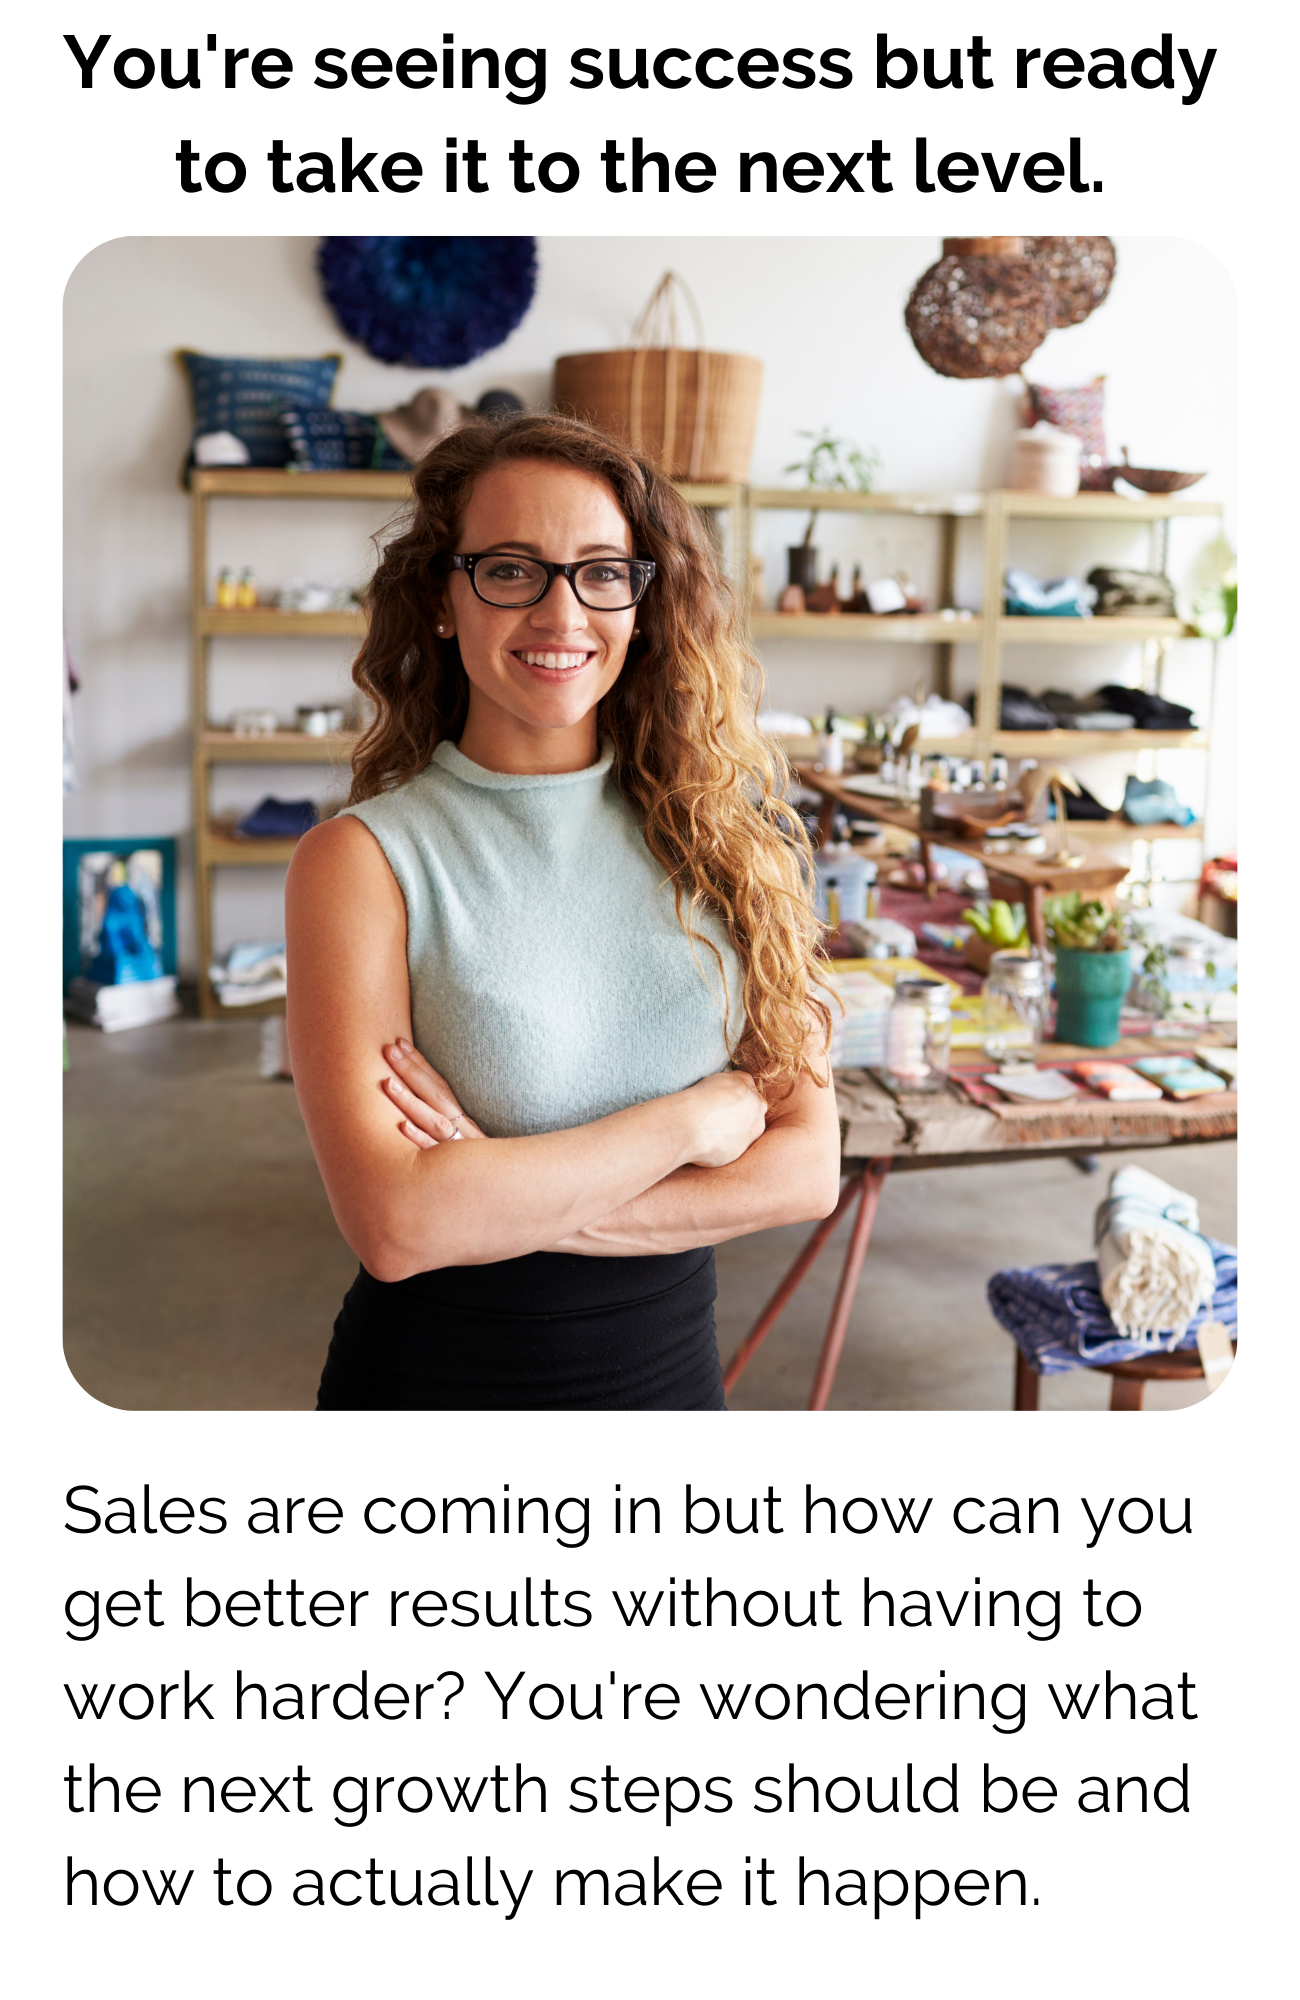 Established Small Business Owner